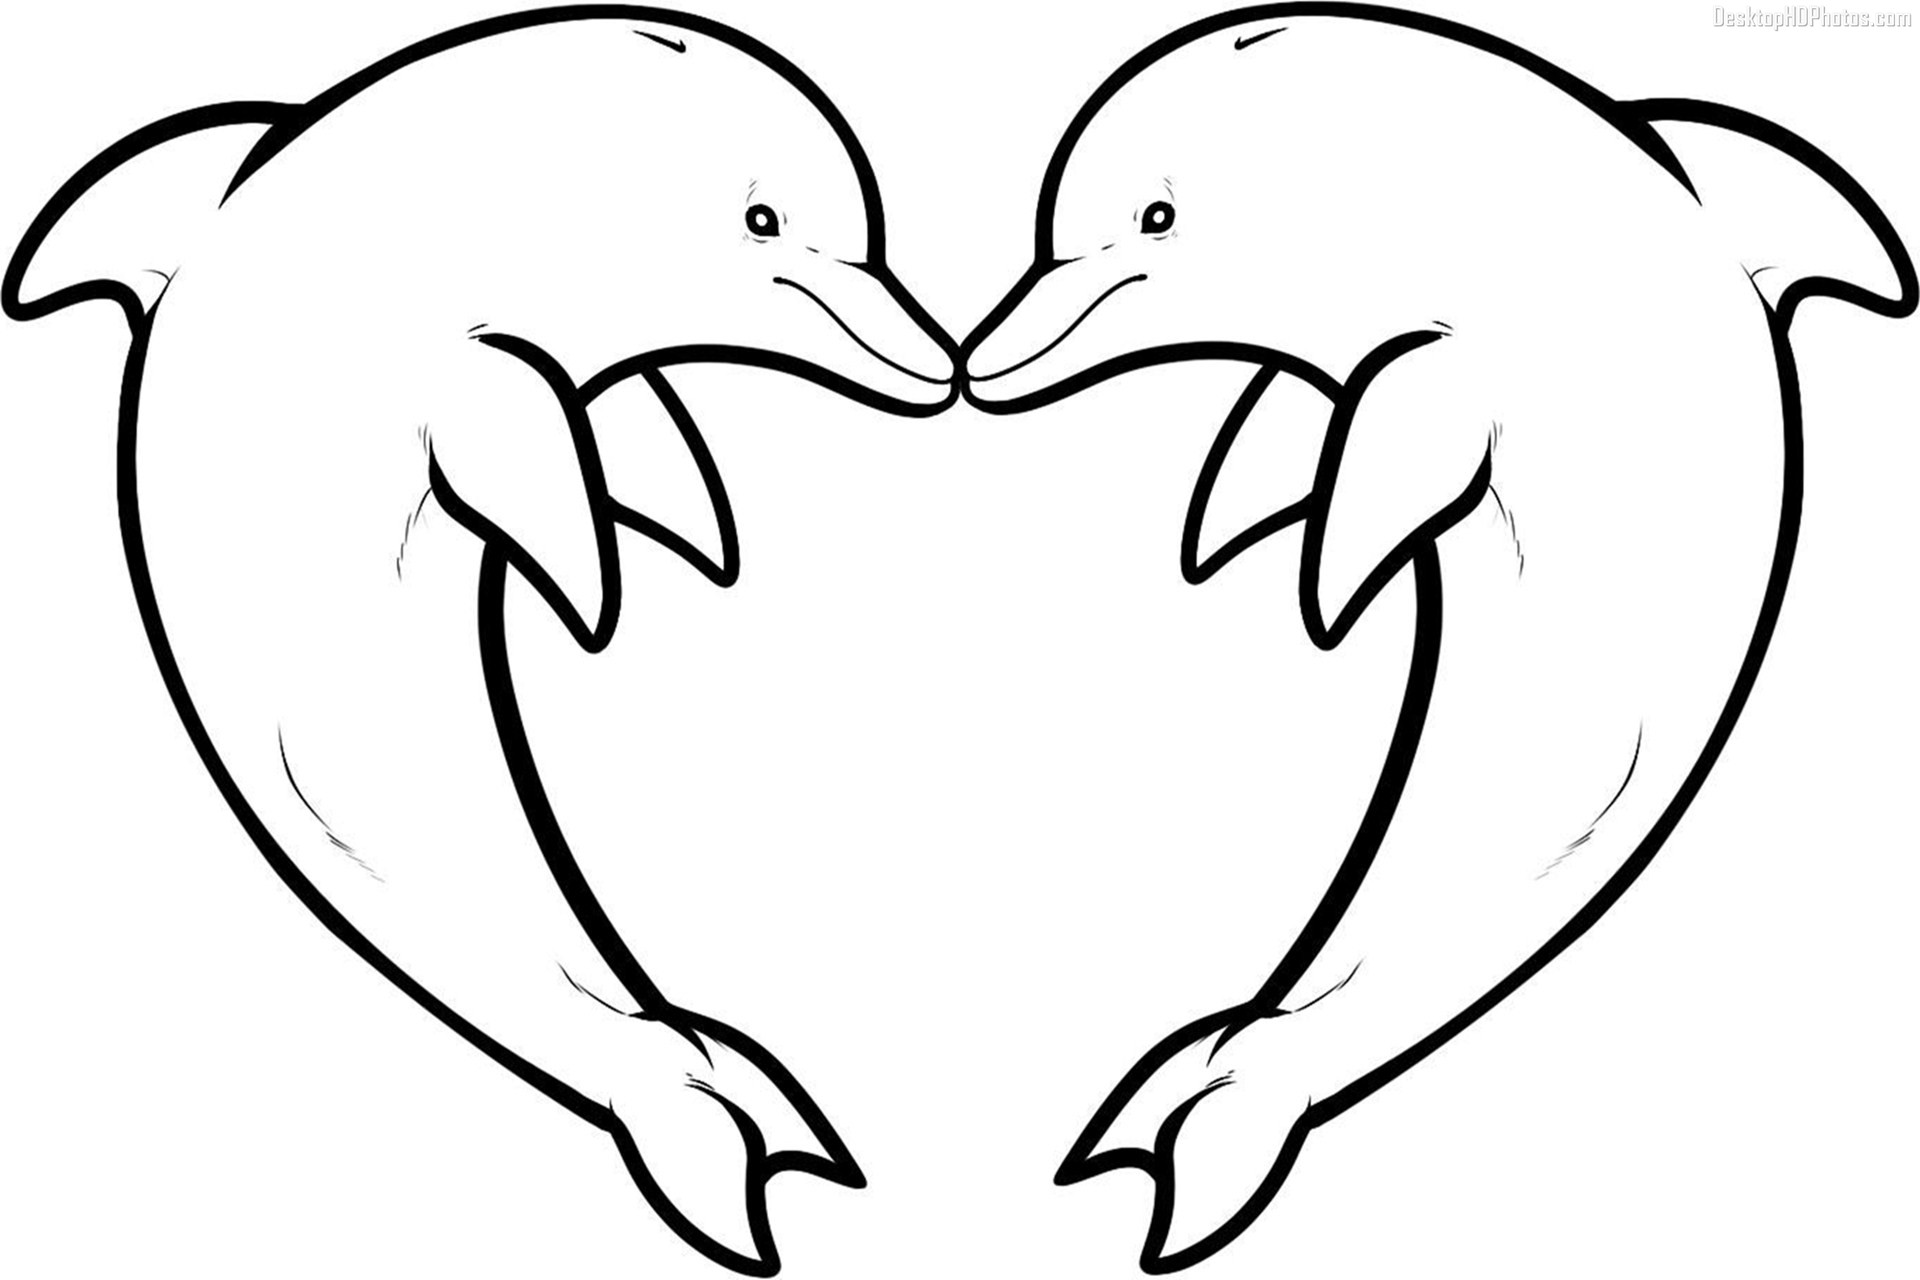 http://coloringtop.com/sites/default/files/3_1197.jpg Dolphins